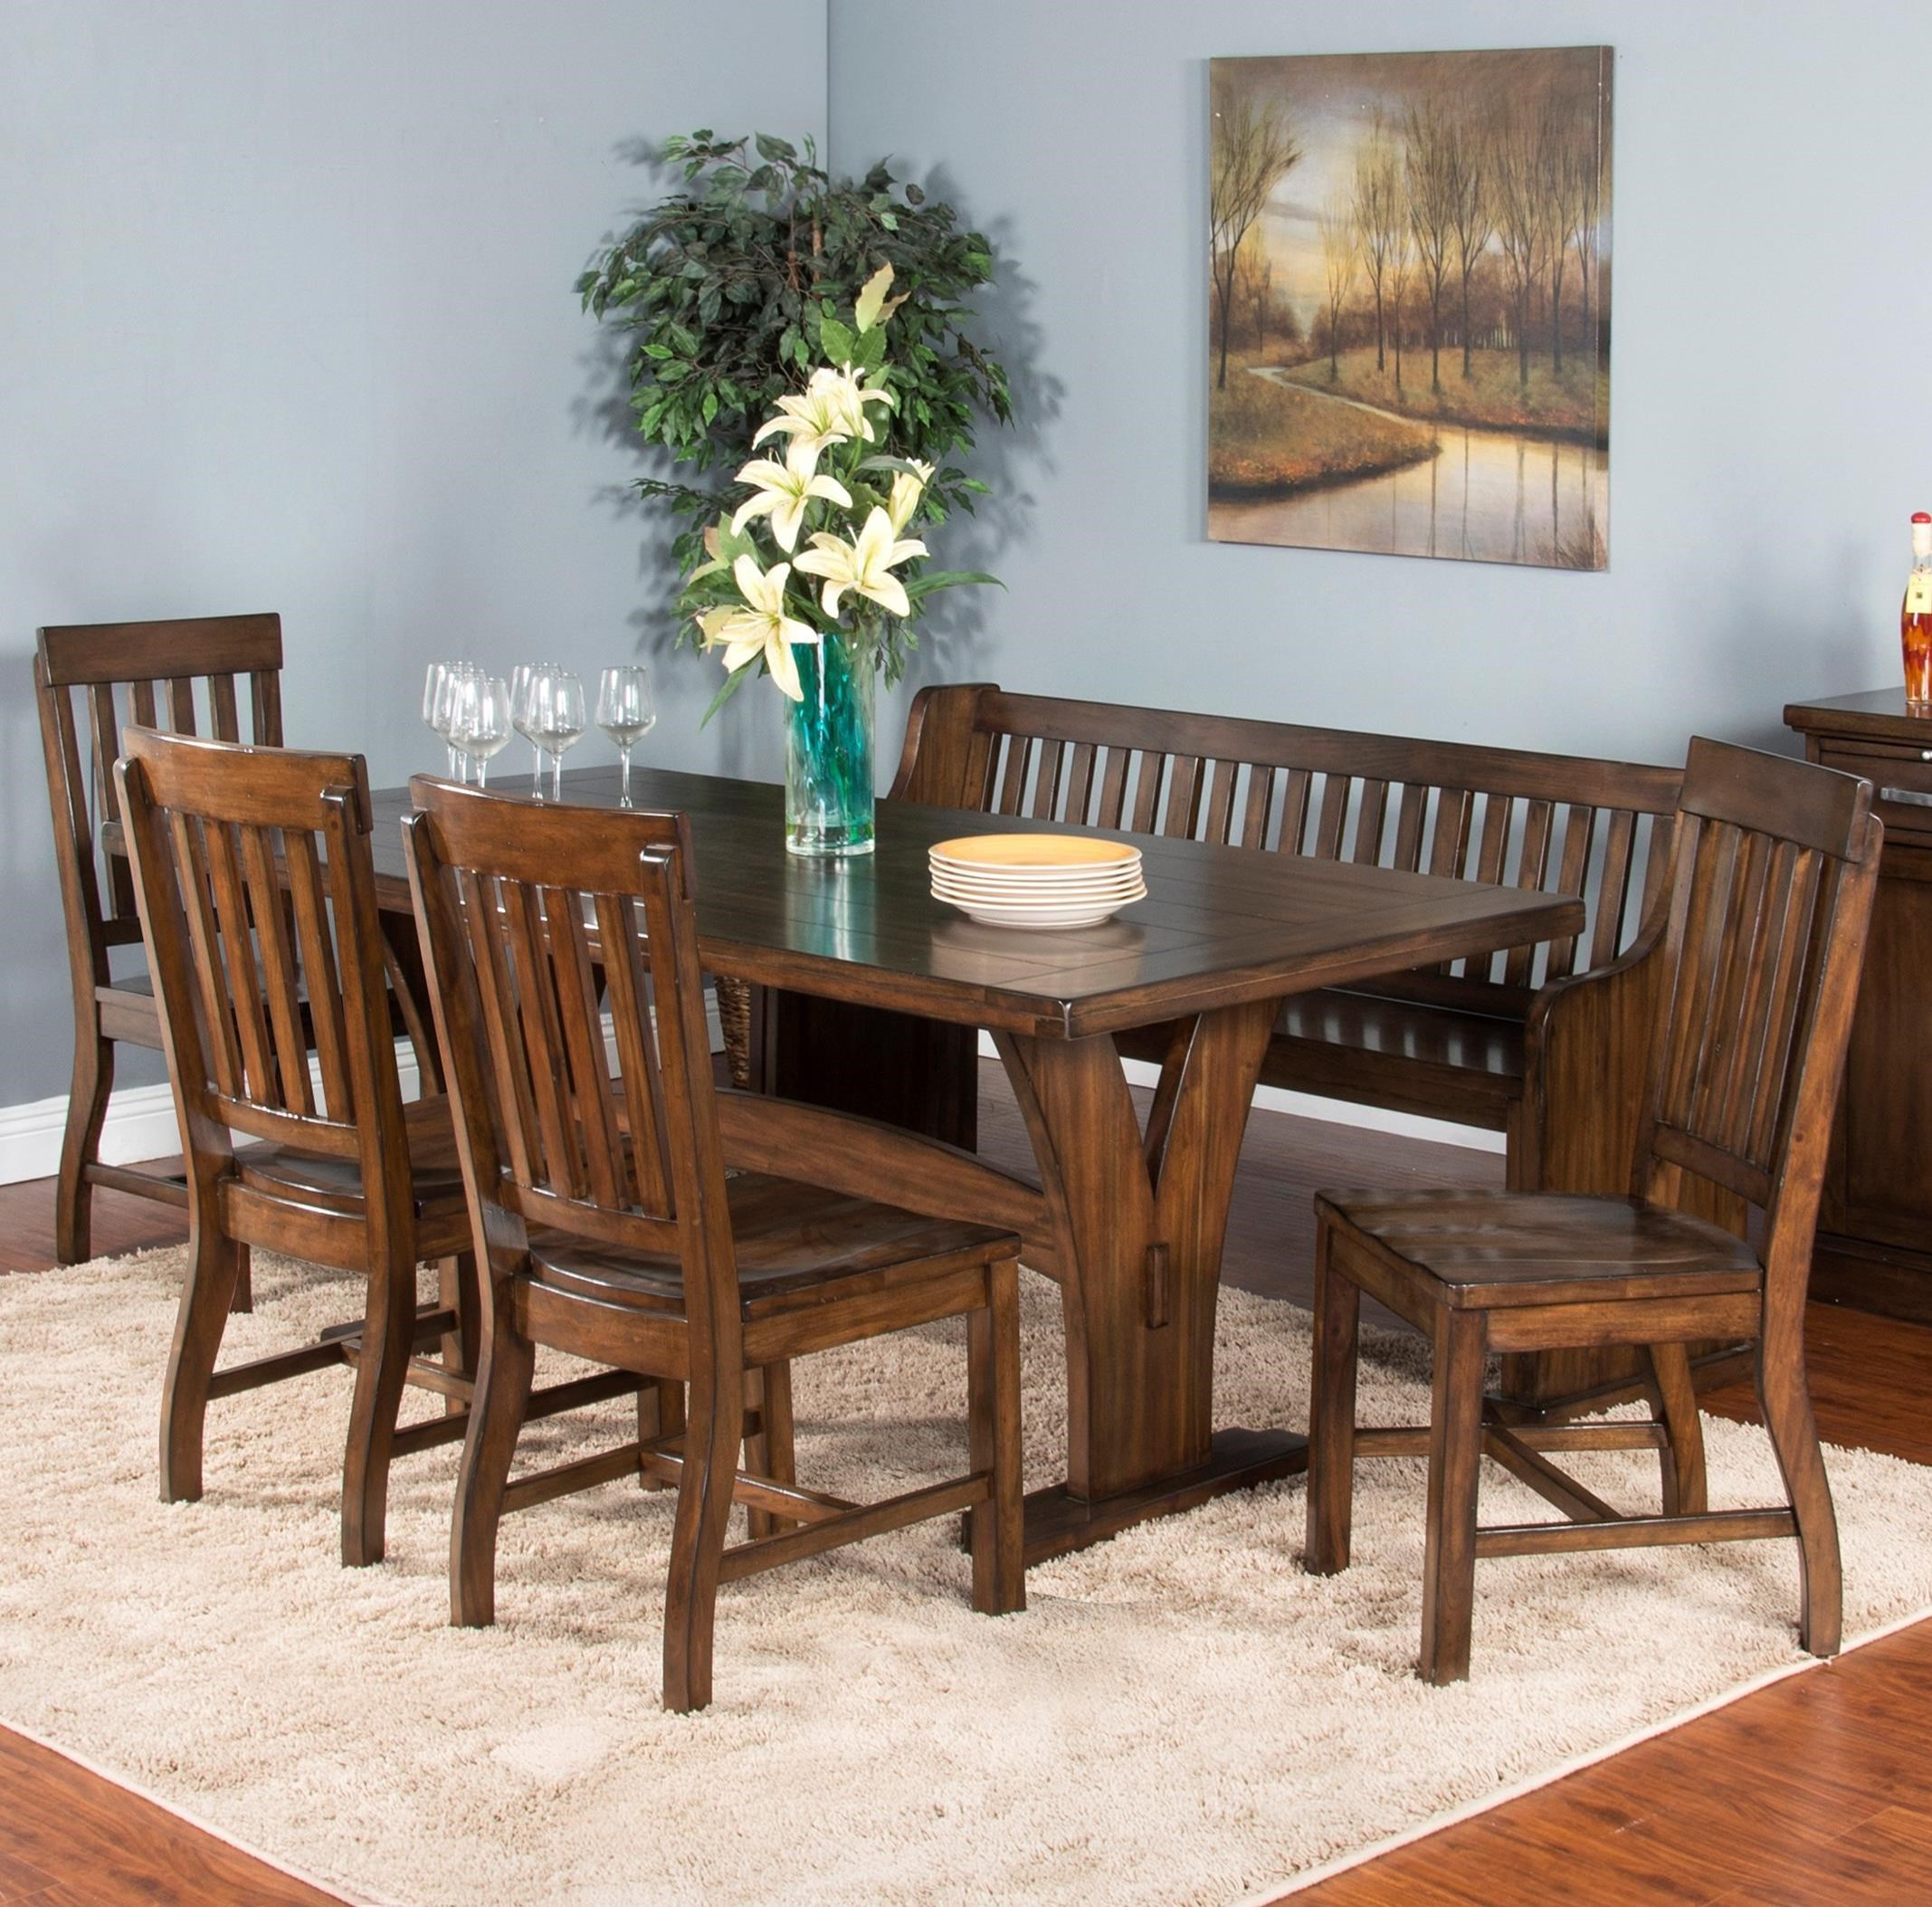 6-Piece Trestle Table Set with Bench